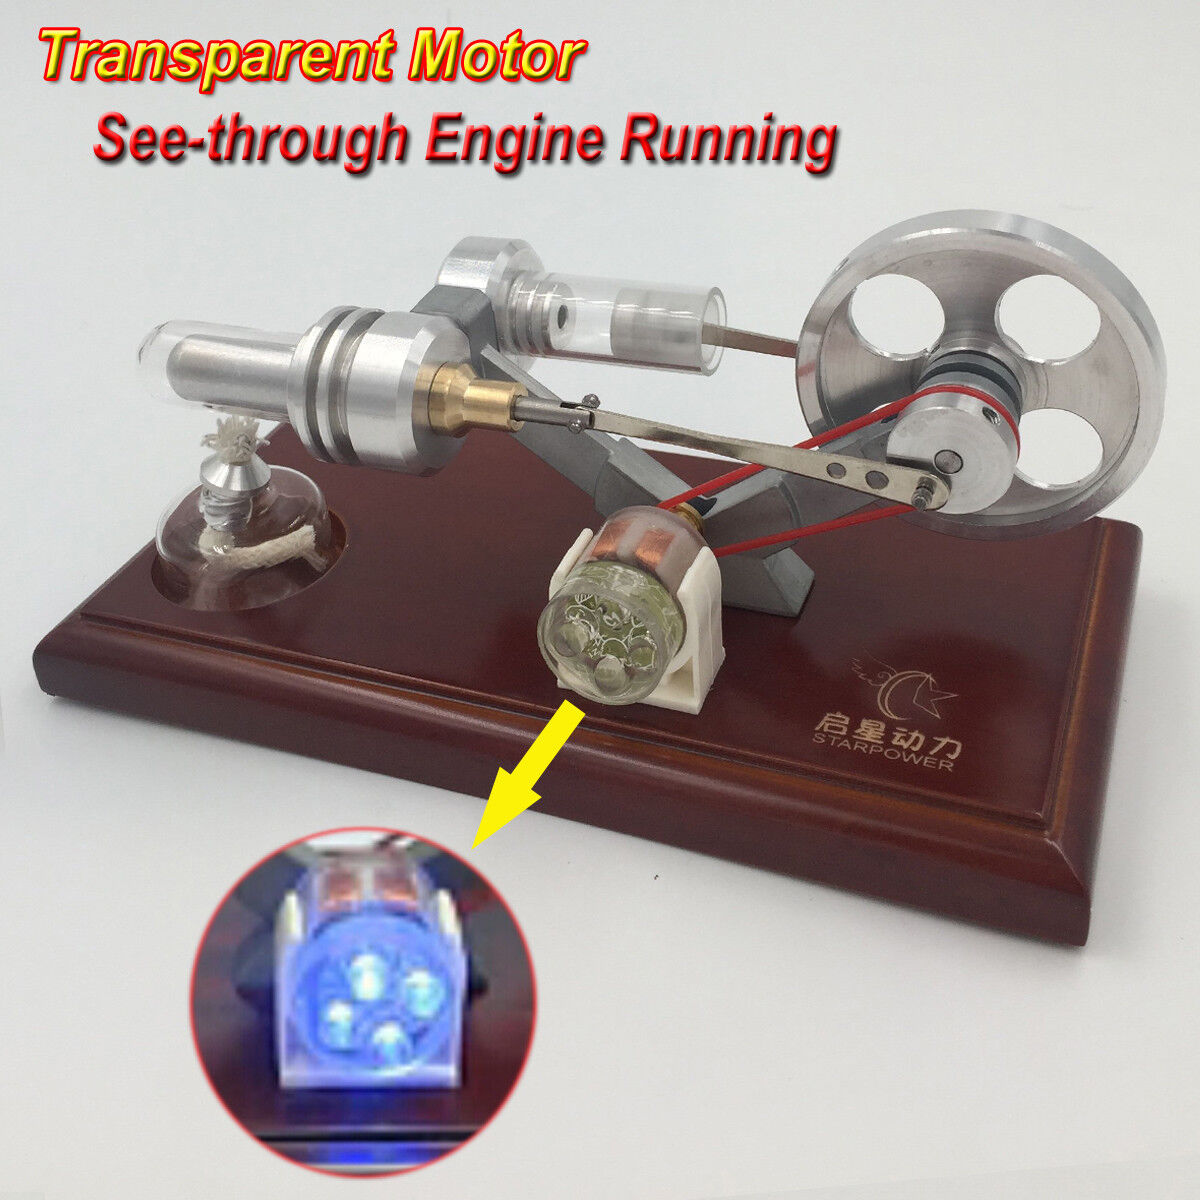 Hot Air Stirling Engine Model Mini Electricity Power Generator Motor Toy w  LED